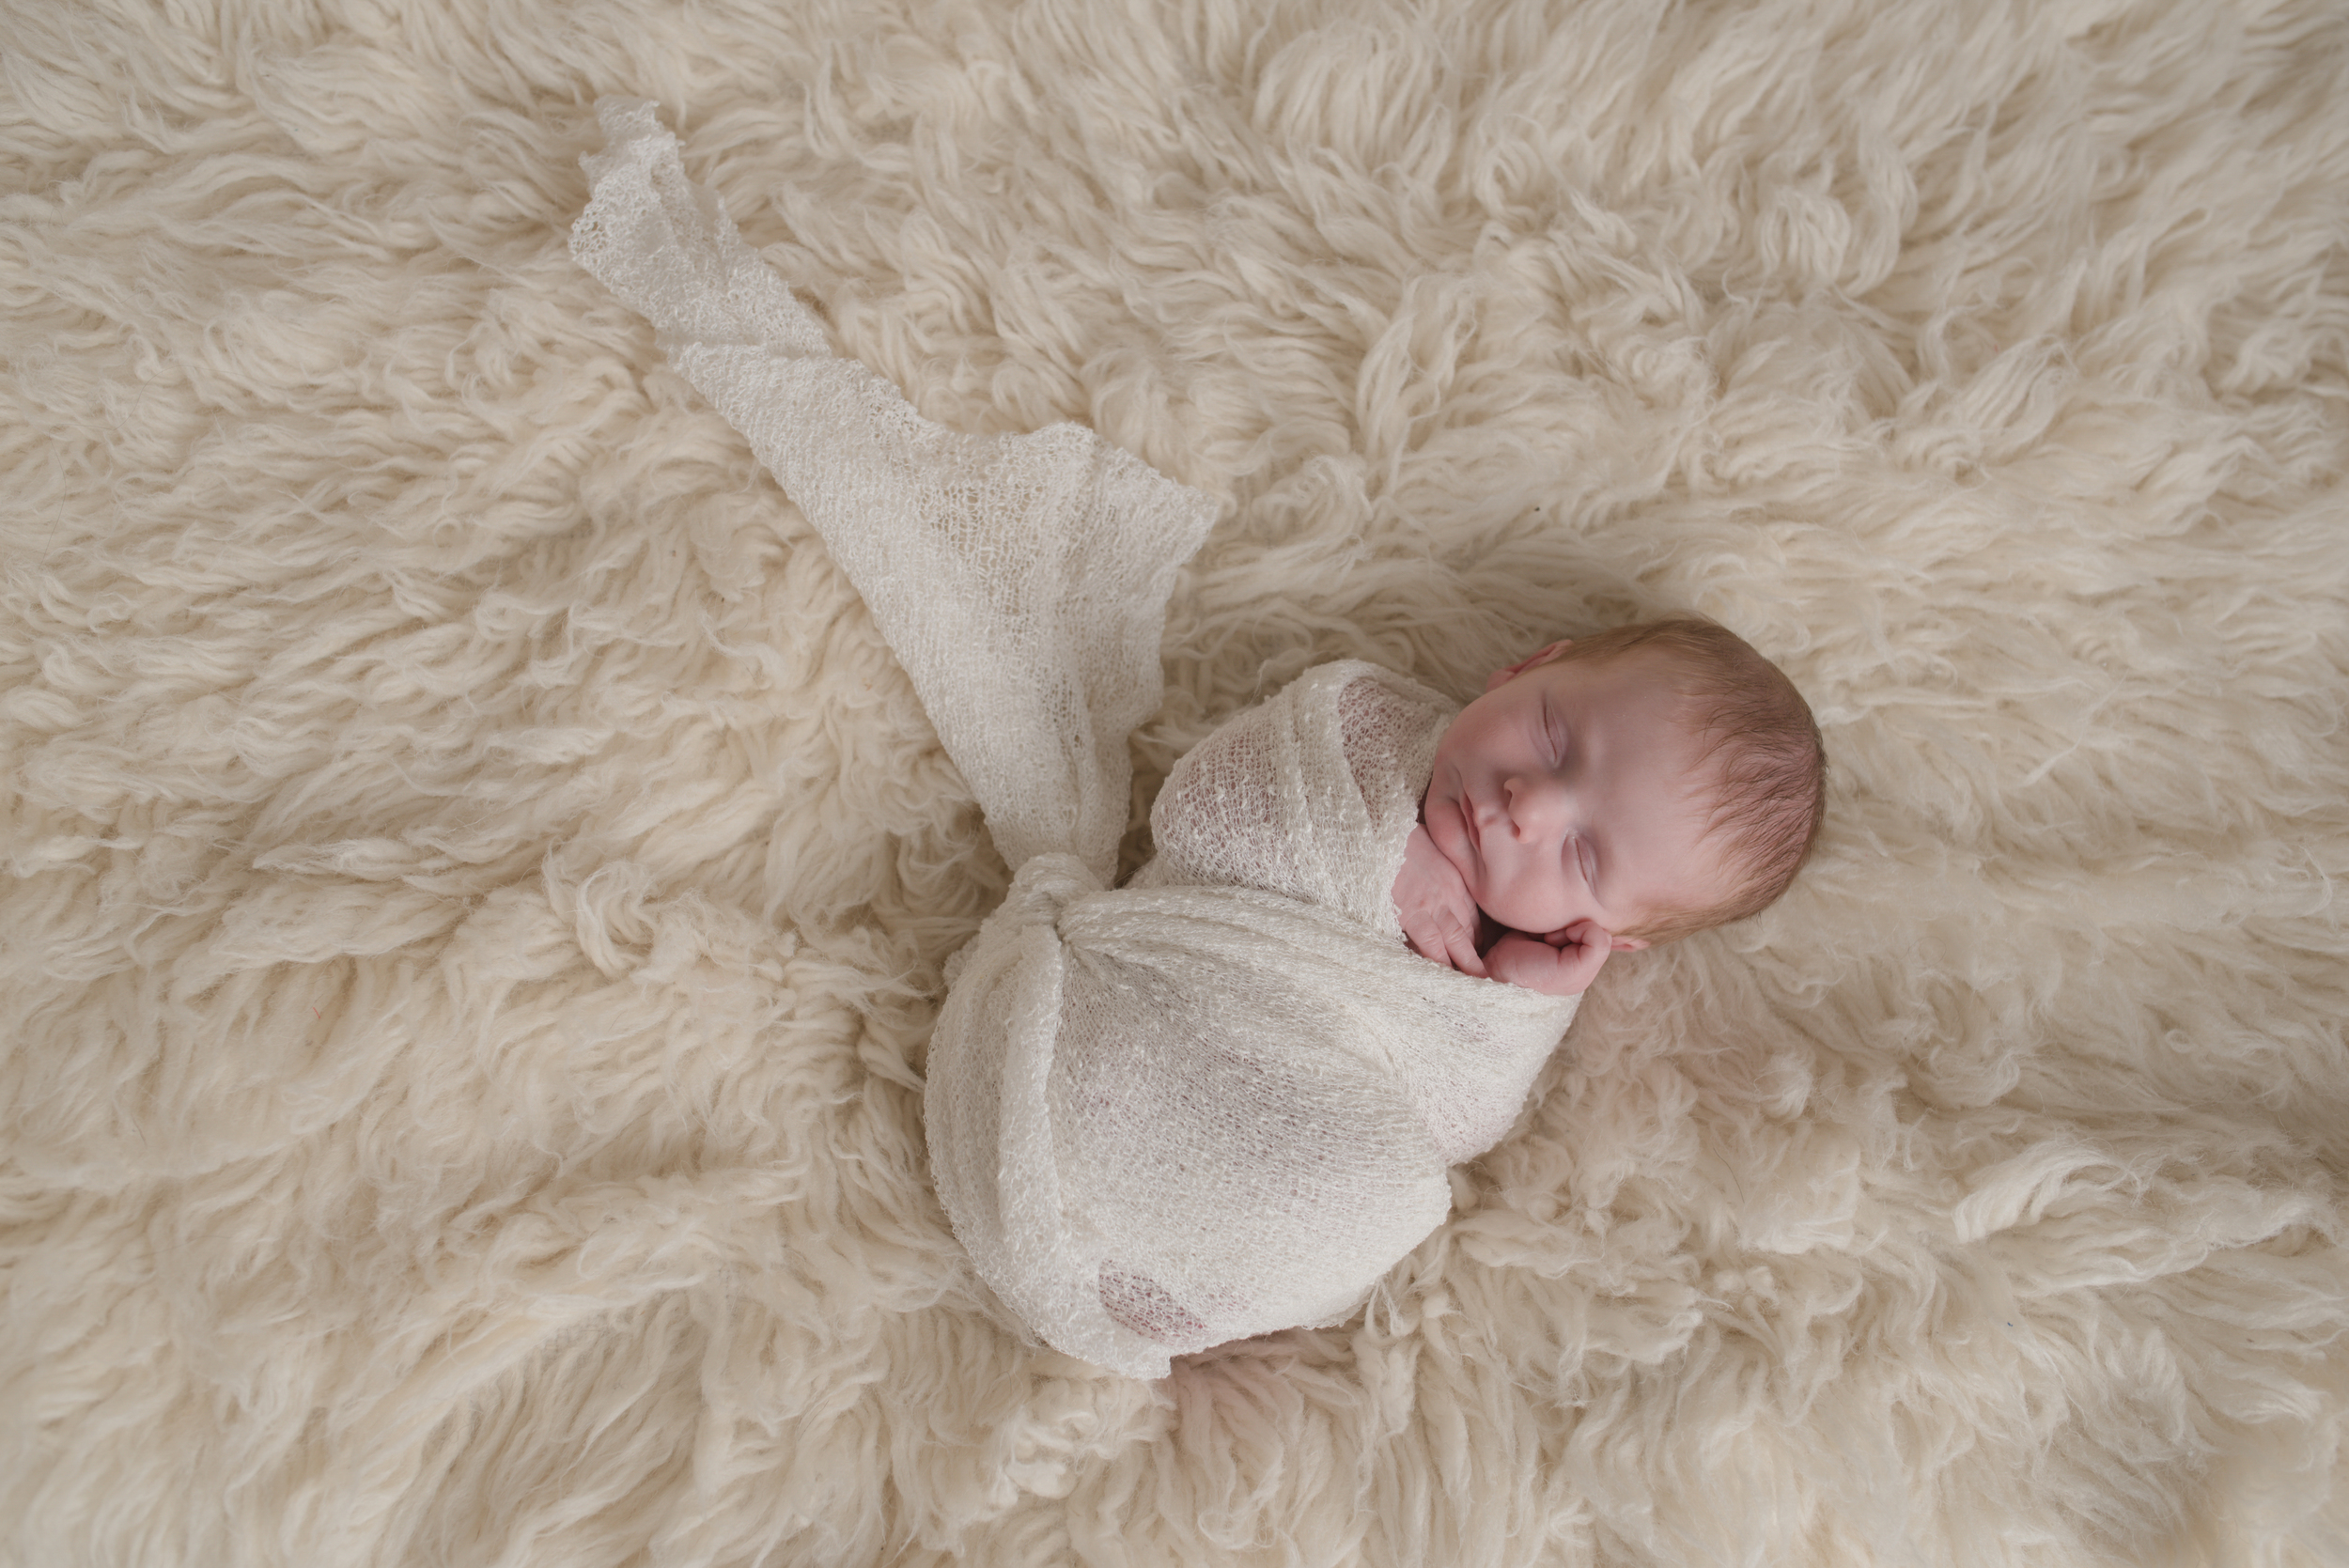 southwest-kansas-newborn-photography9.jpg